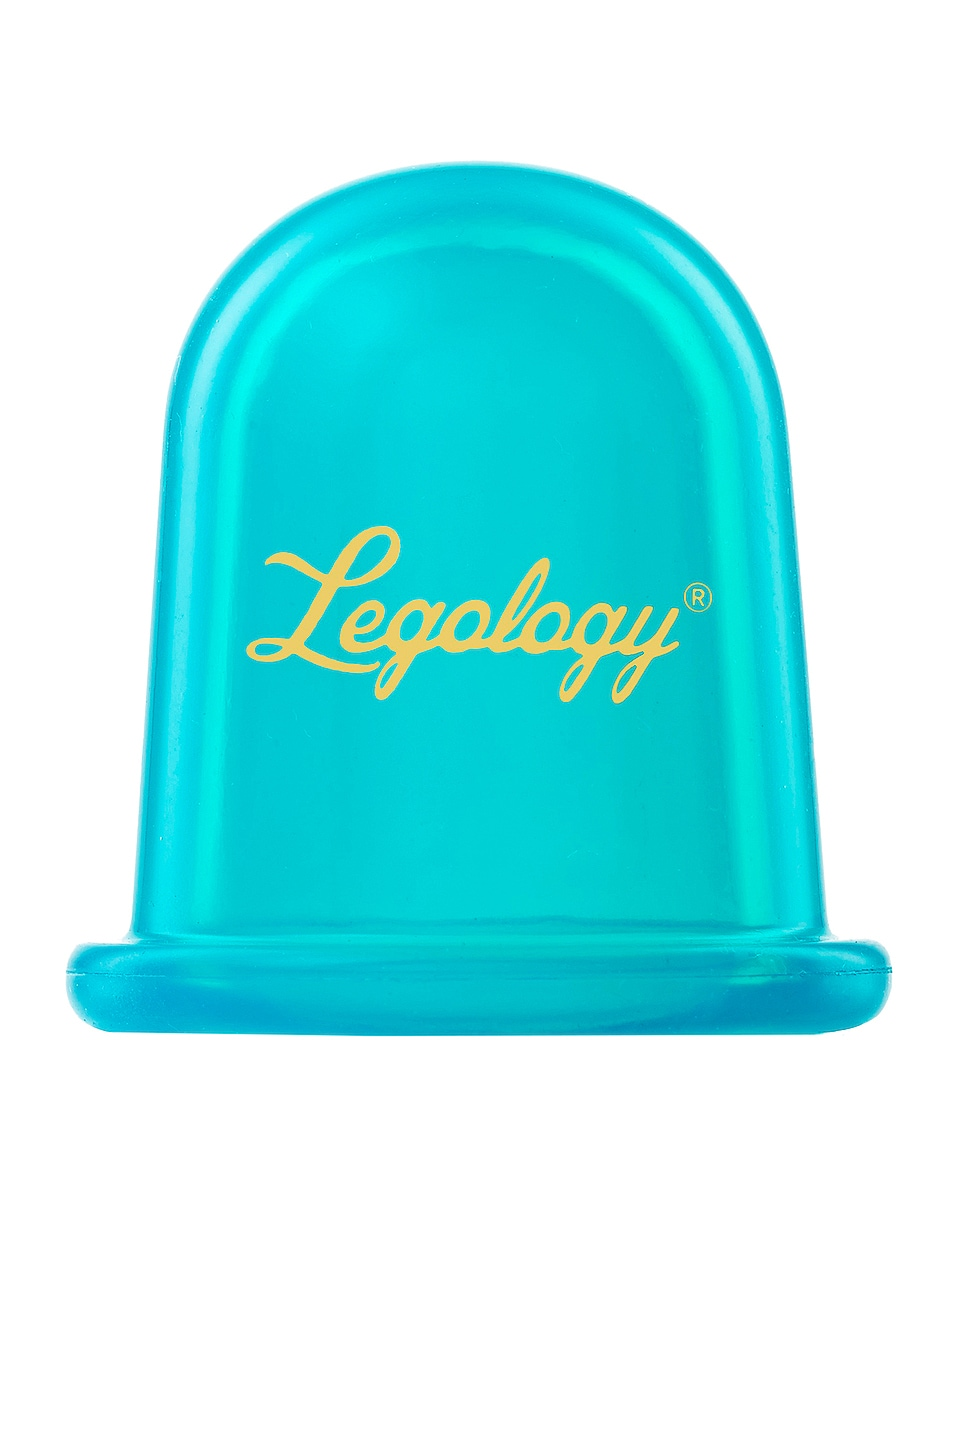 Legology Circu-Lite Squeeze Therapy For Legs